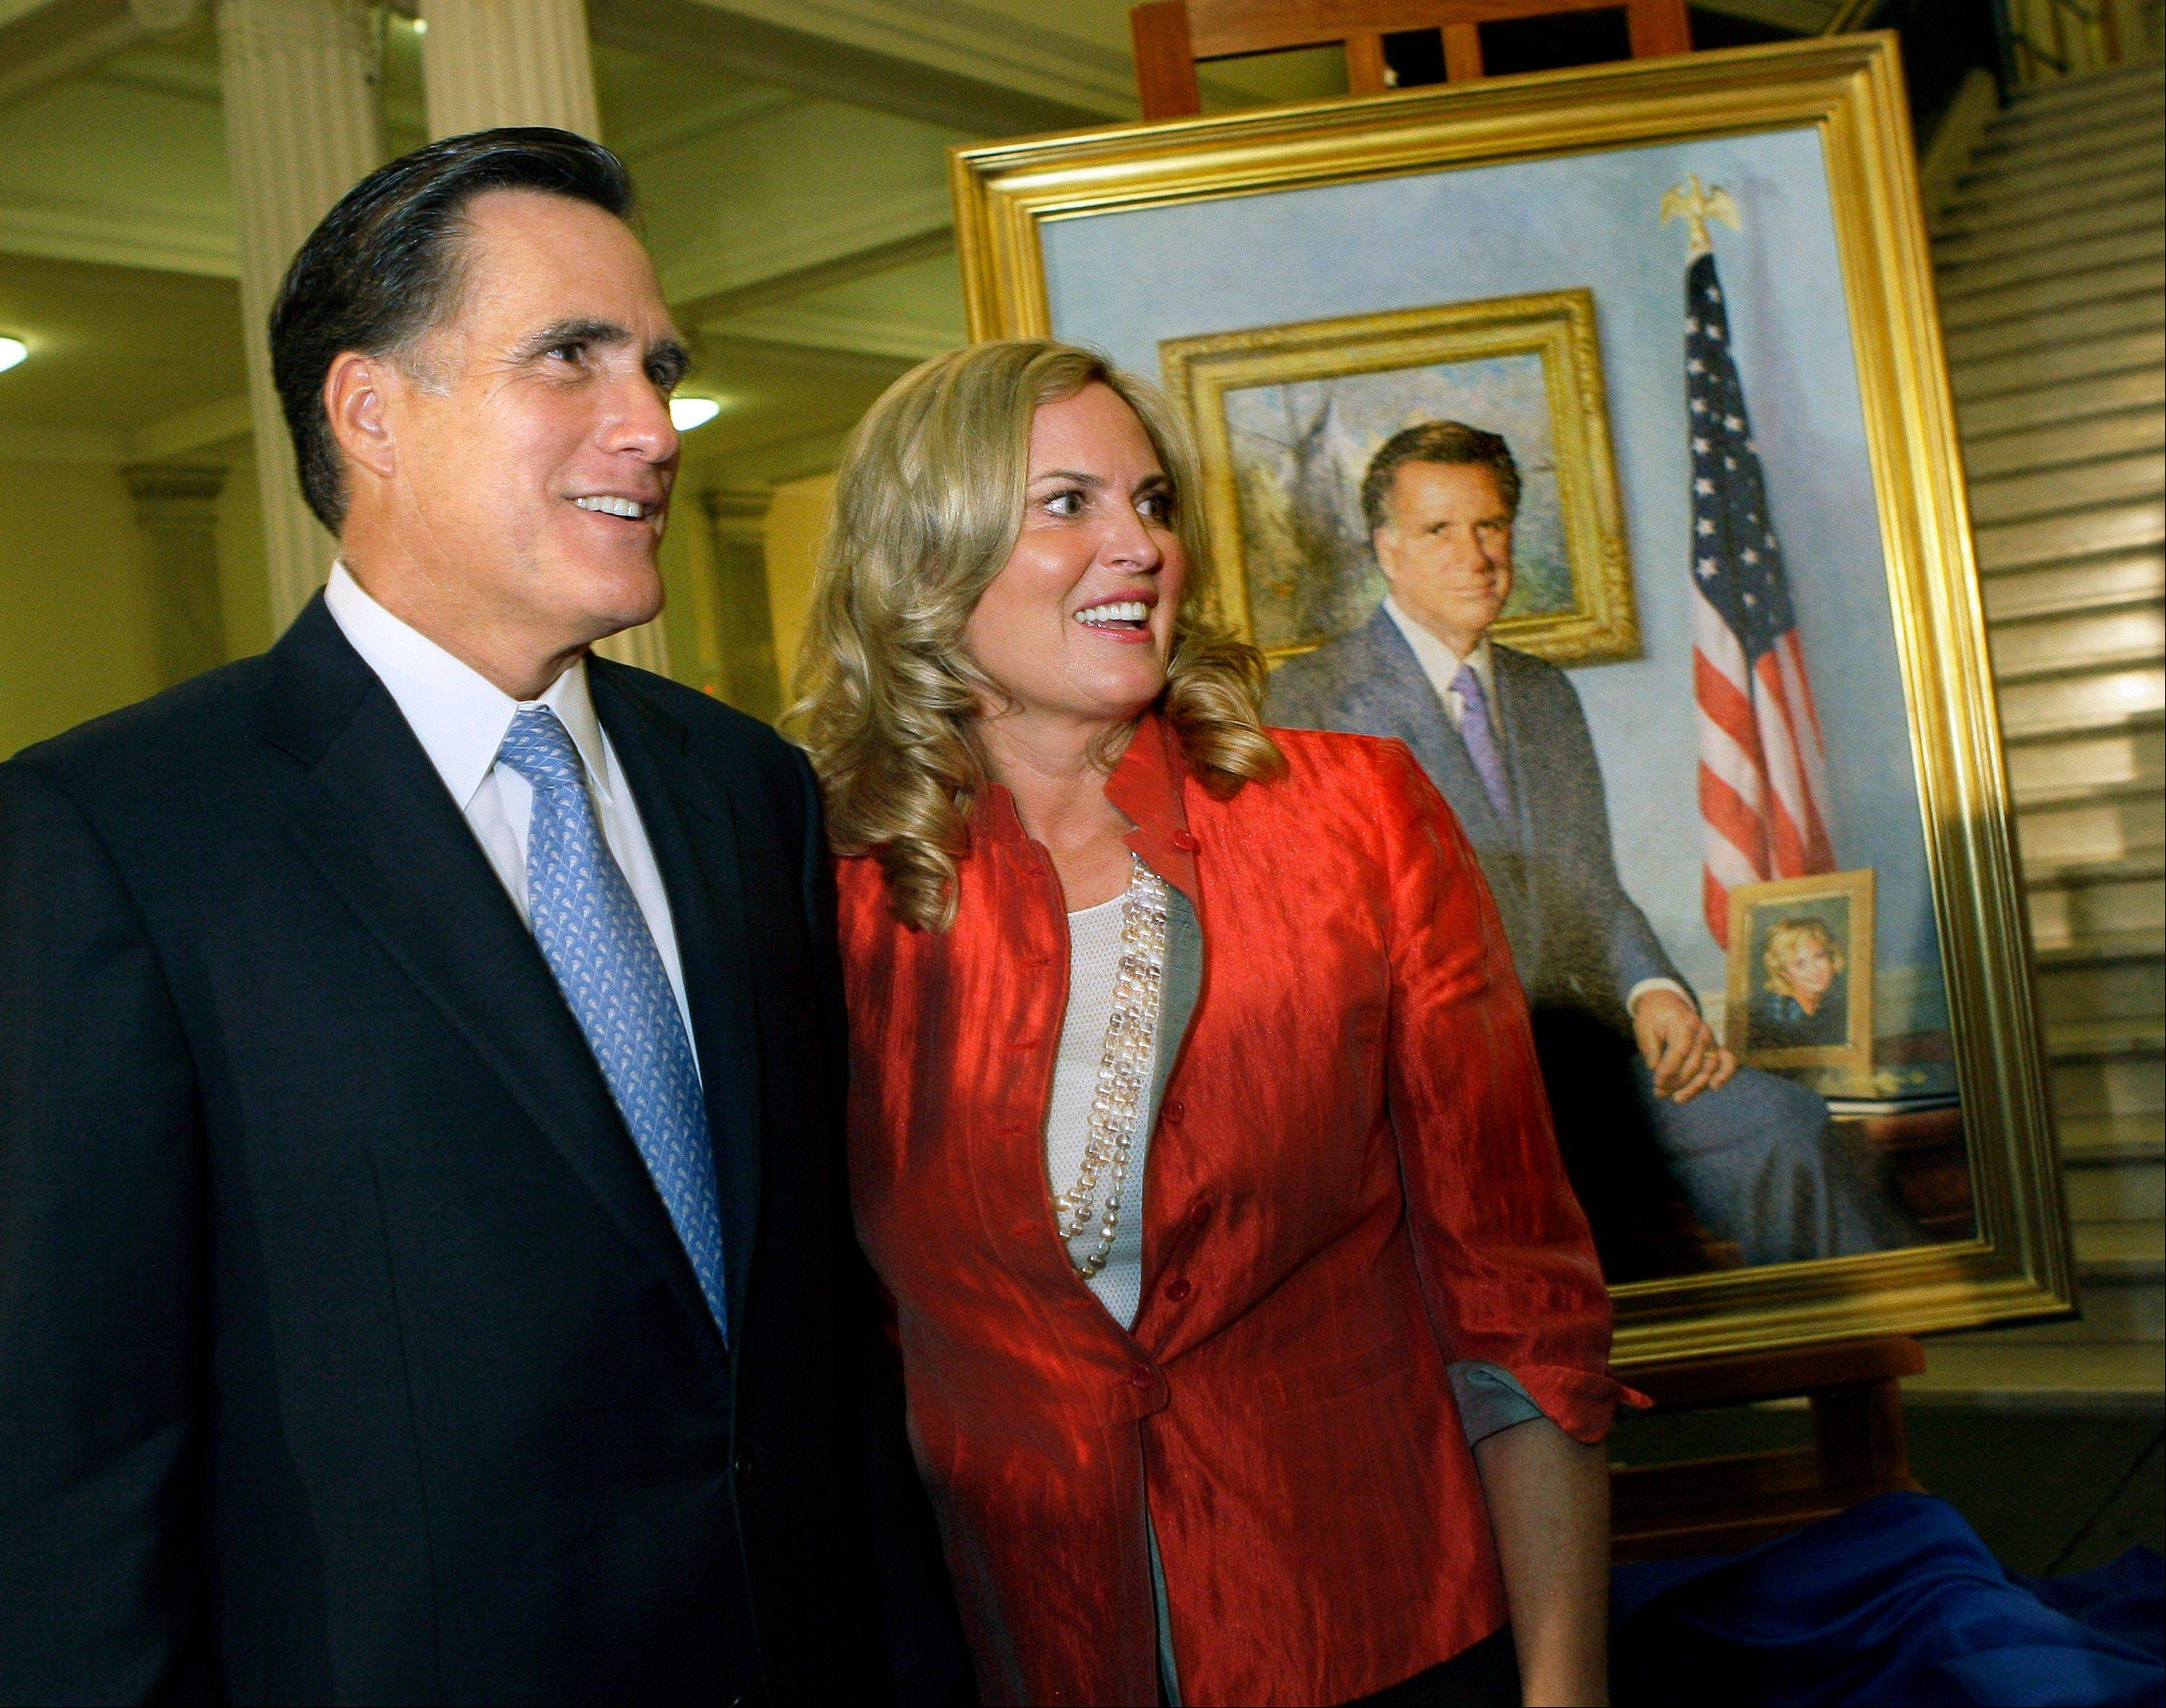 In this June 30, 2009, file photo, former Massachusetts Gov. Mitt Romney and his wife, Ann, greet guests after his official portrait is unveiled during a ceremony on the Grand Staircase at the Statehouse in Boston. Romney's portrait was painted by New Hampshire artist Richard Whitney for $30,000 in private donations and will hang in the lobby of the third-floor Governor's Office.